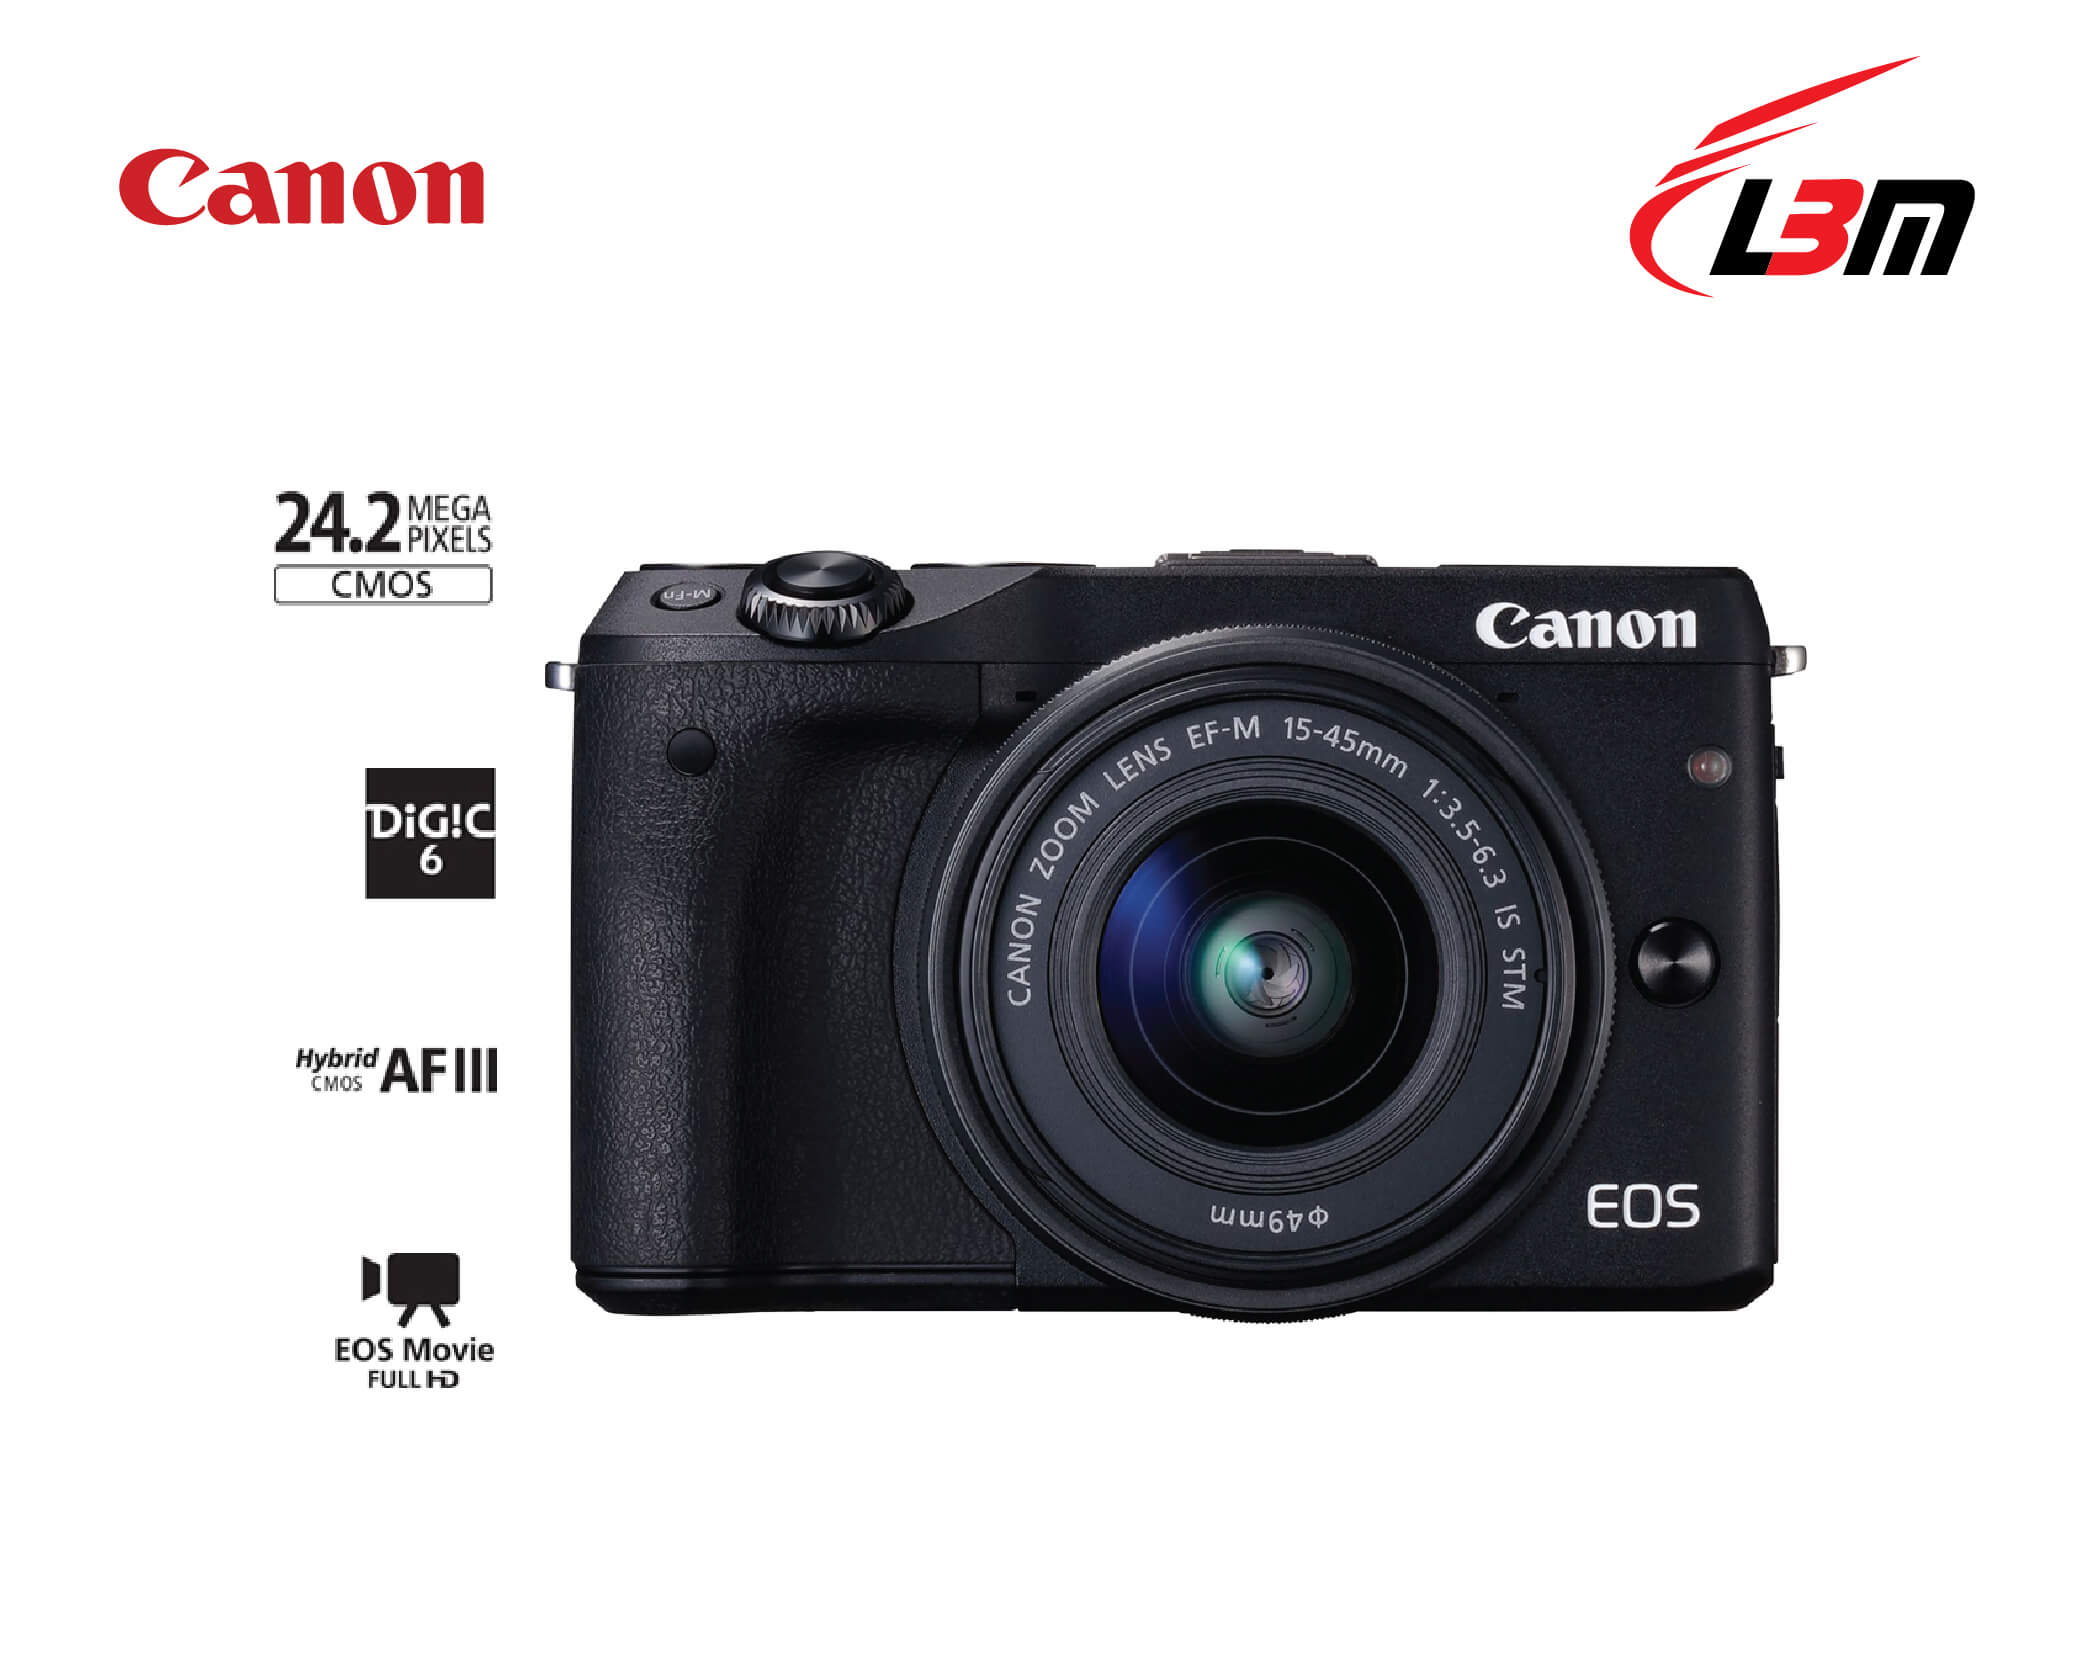 EOS M3 Kit (EF-M15-45 IS STM)